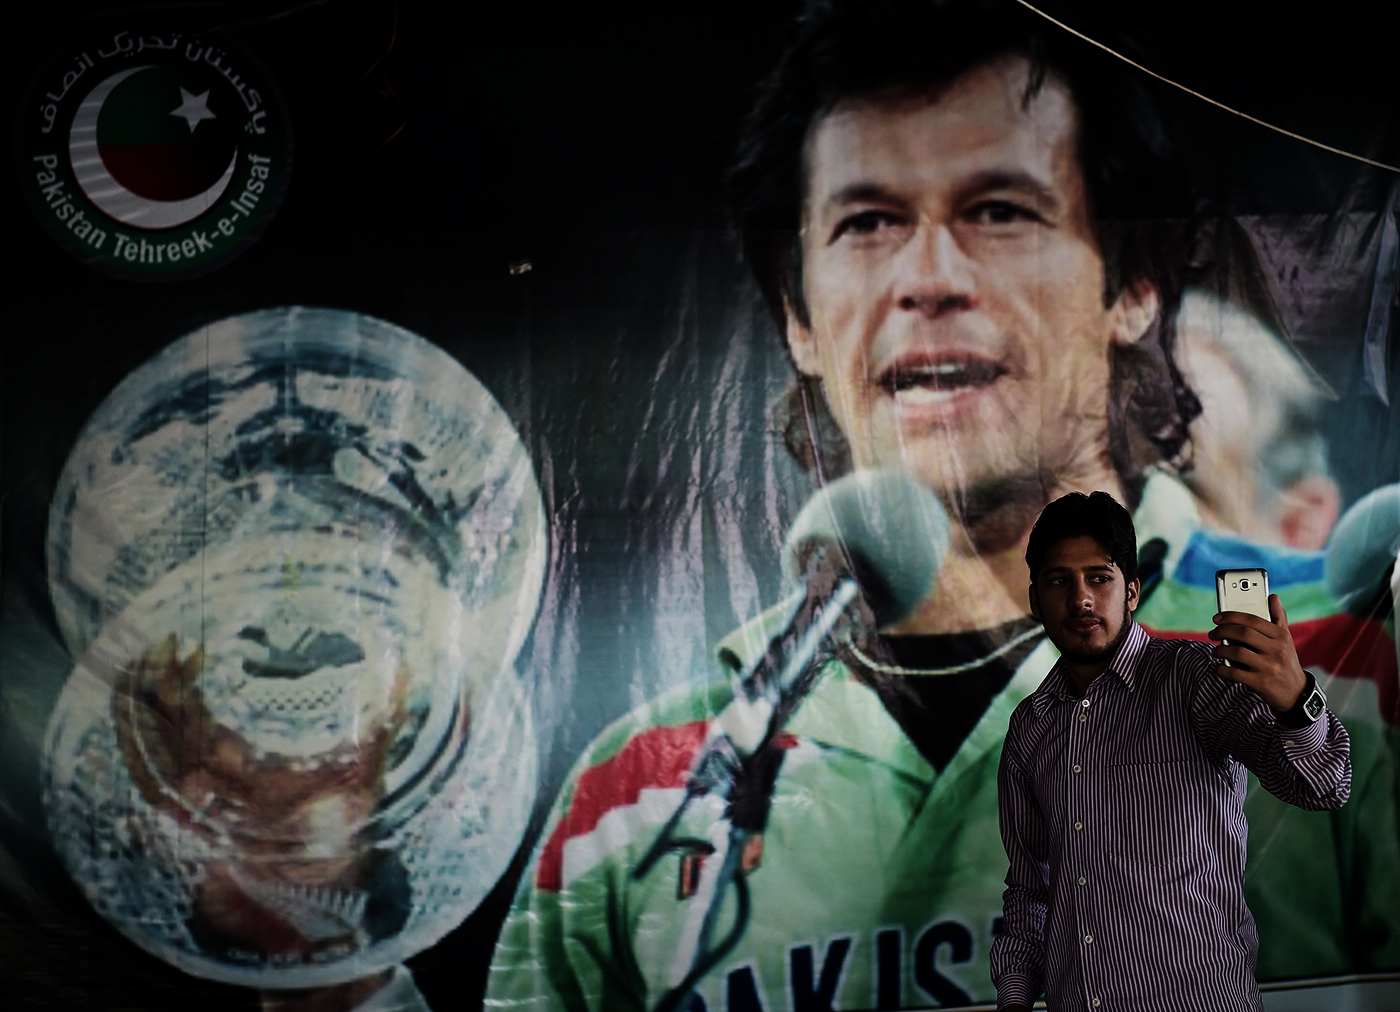 A man take a photo with a poster of Imran Khan in the background